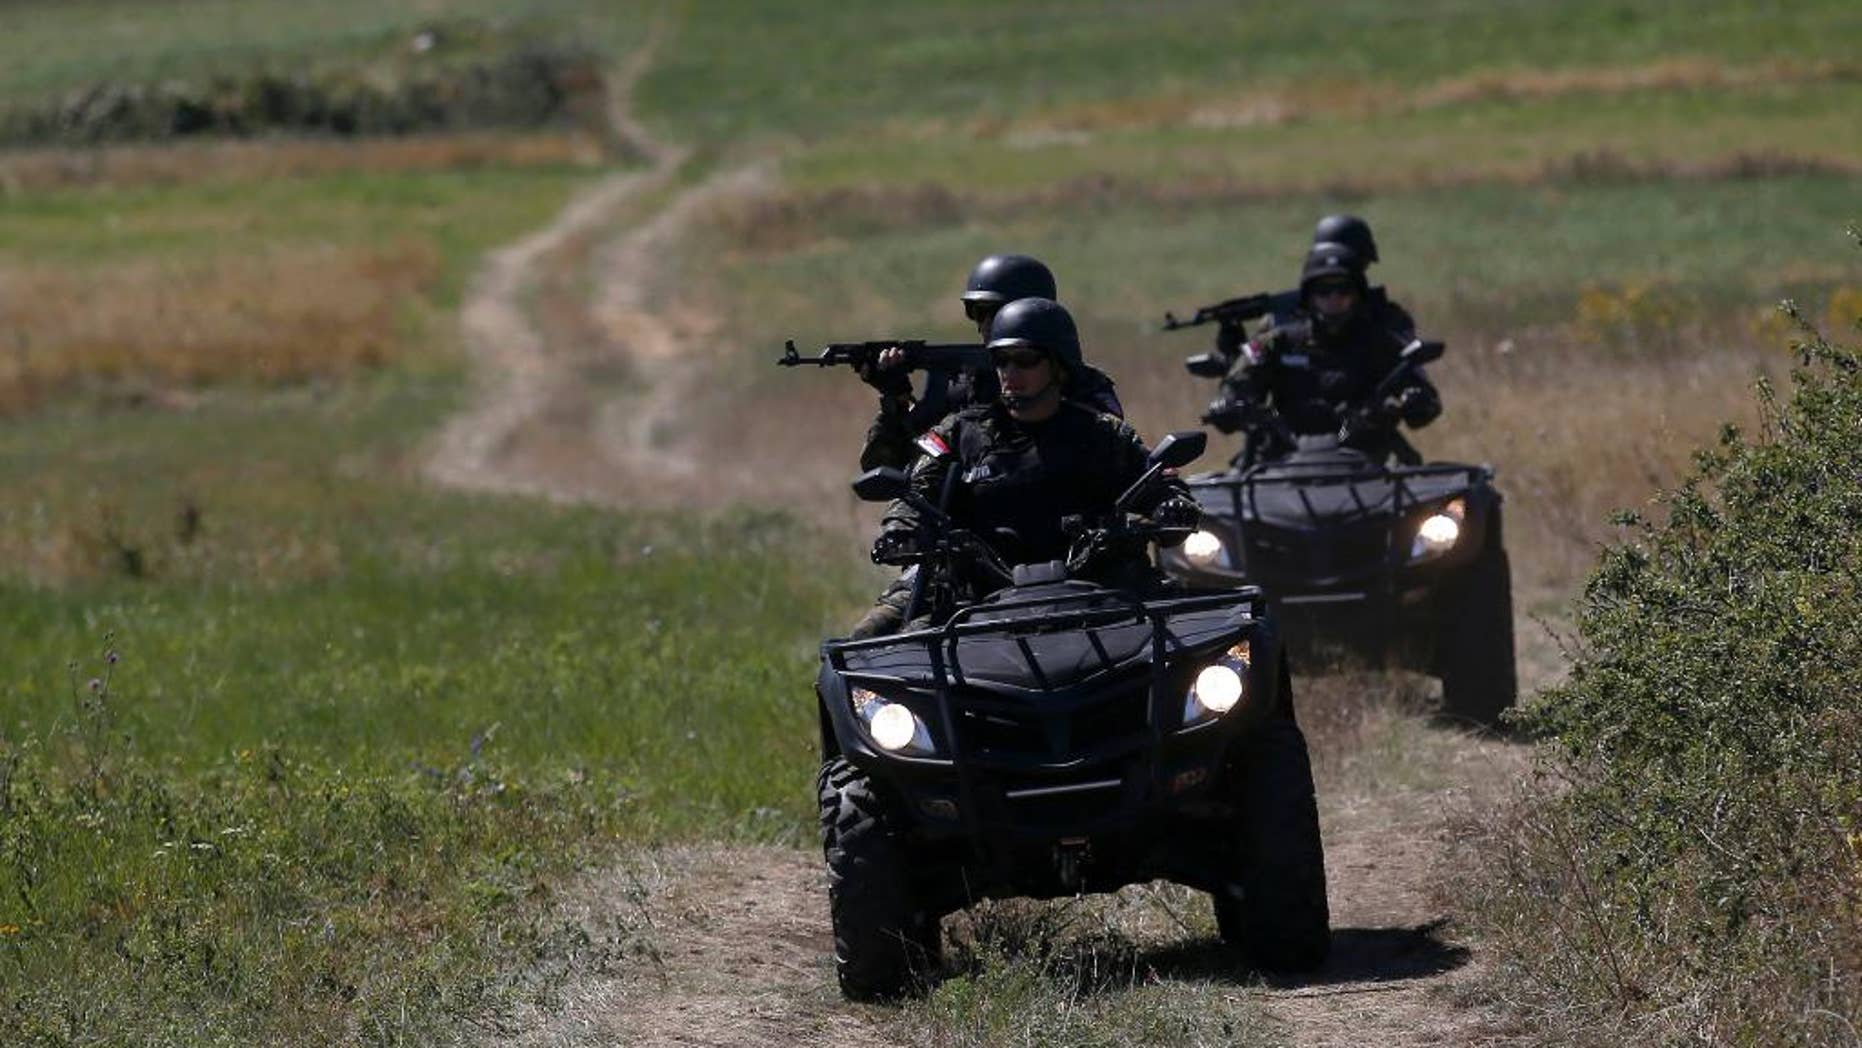 FILE - In this Aug. 15, 2016 file photo, Serbian officers patrol near the border between Serbia and Bulgaria, not far from the border crossing Vrska Cuka, about 250 kilometers (155 miles) southeast of Belgrade, Serbia. Serbia's president, speaking on Monday, Oct. 3, 2016, said that the Balkan country would seal its borders to stop migrants if the European Union countries further along the migration route fully block their boundaries against people fleeing war and poverty. (AP Photo/Darko Vojinovic, File)